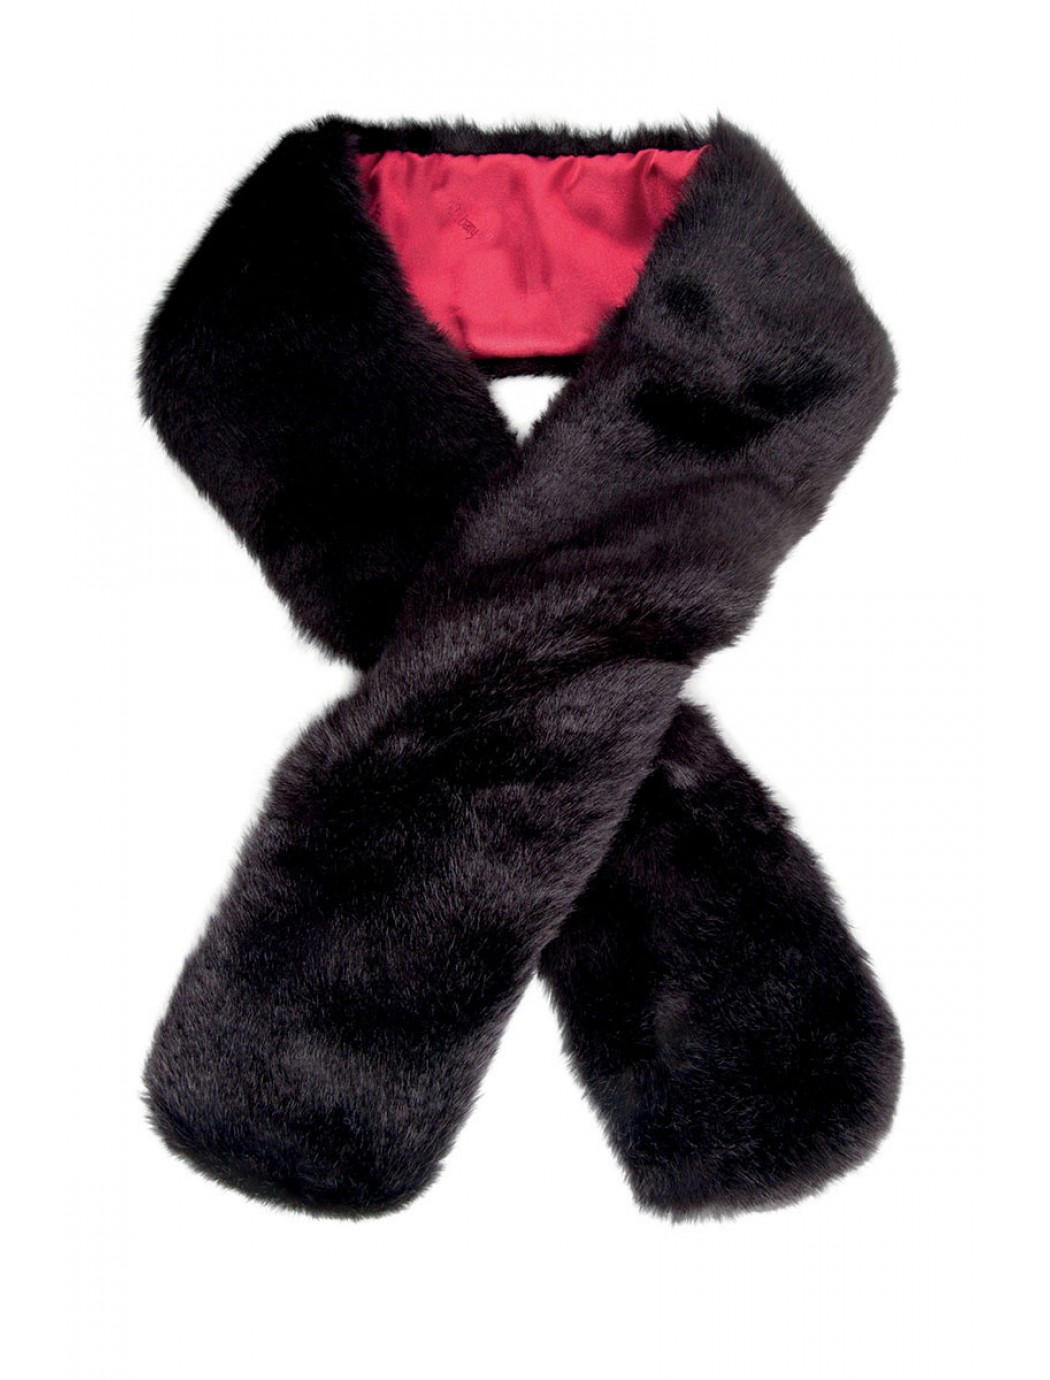 scarf-socks-headwear-scaves-black